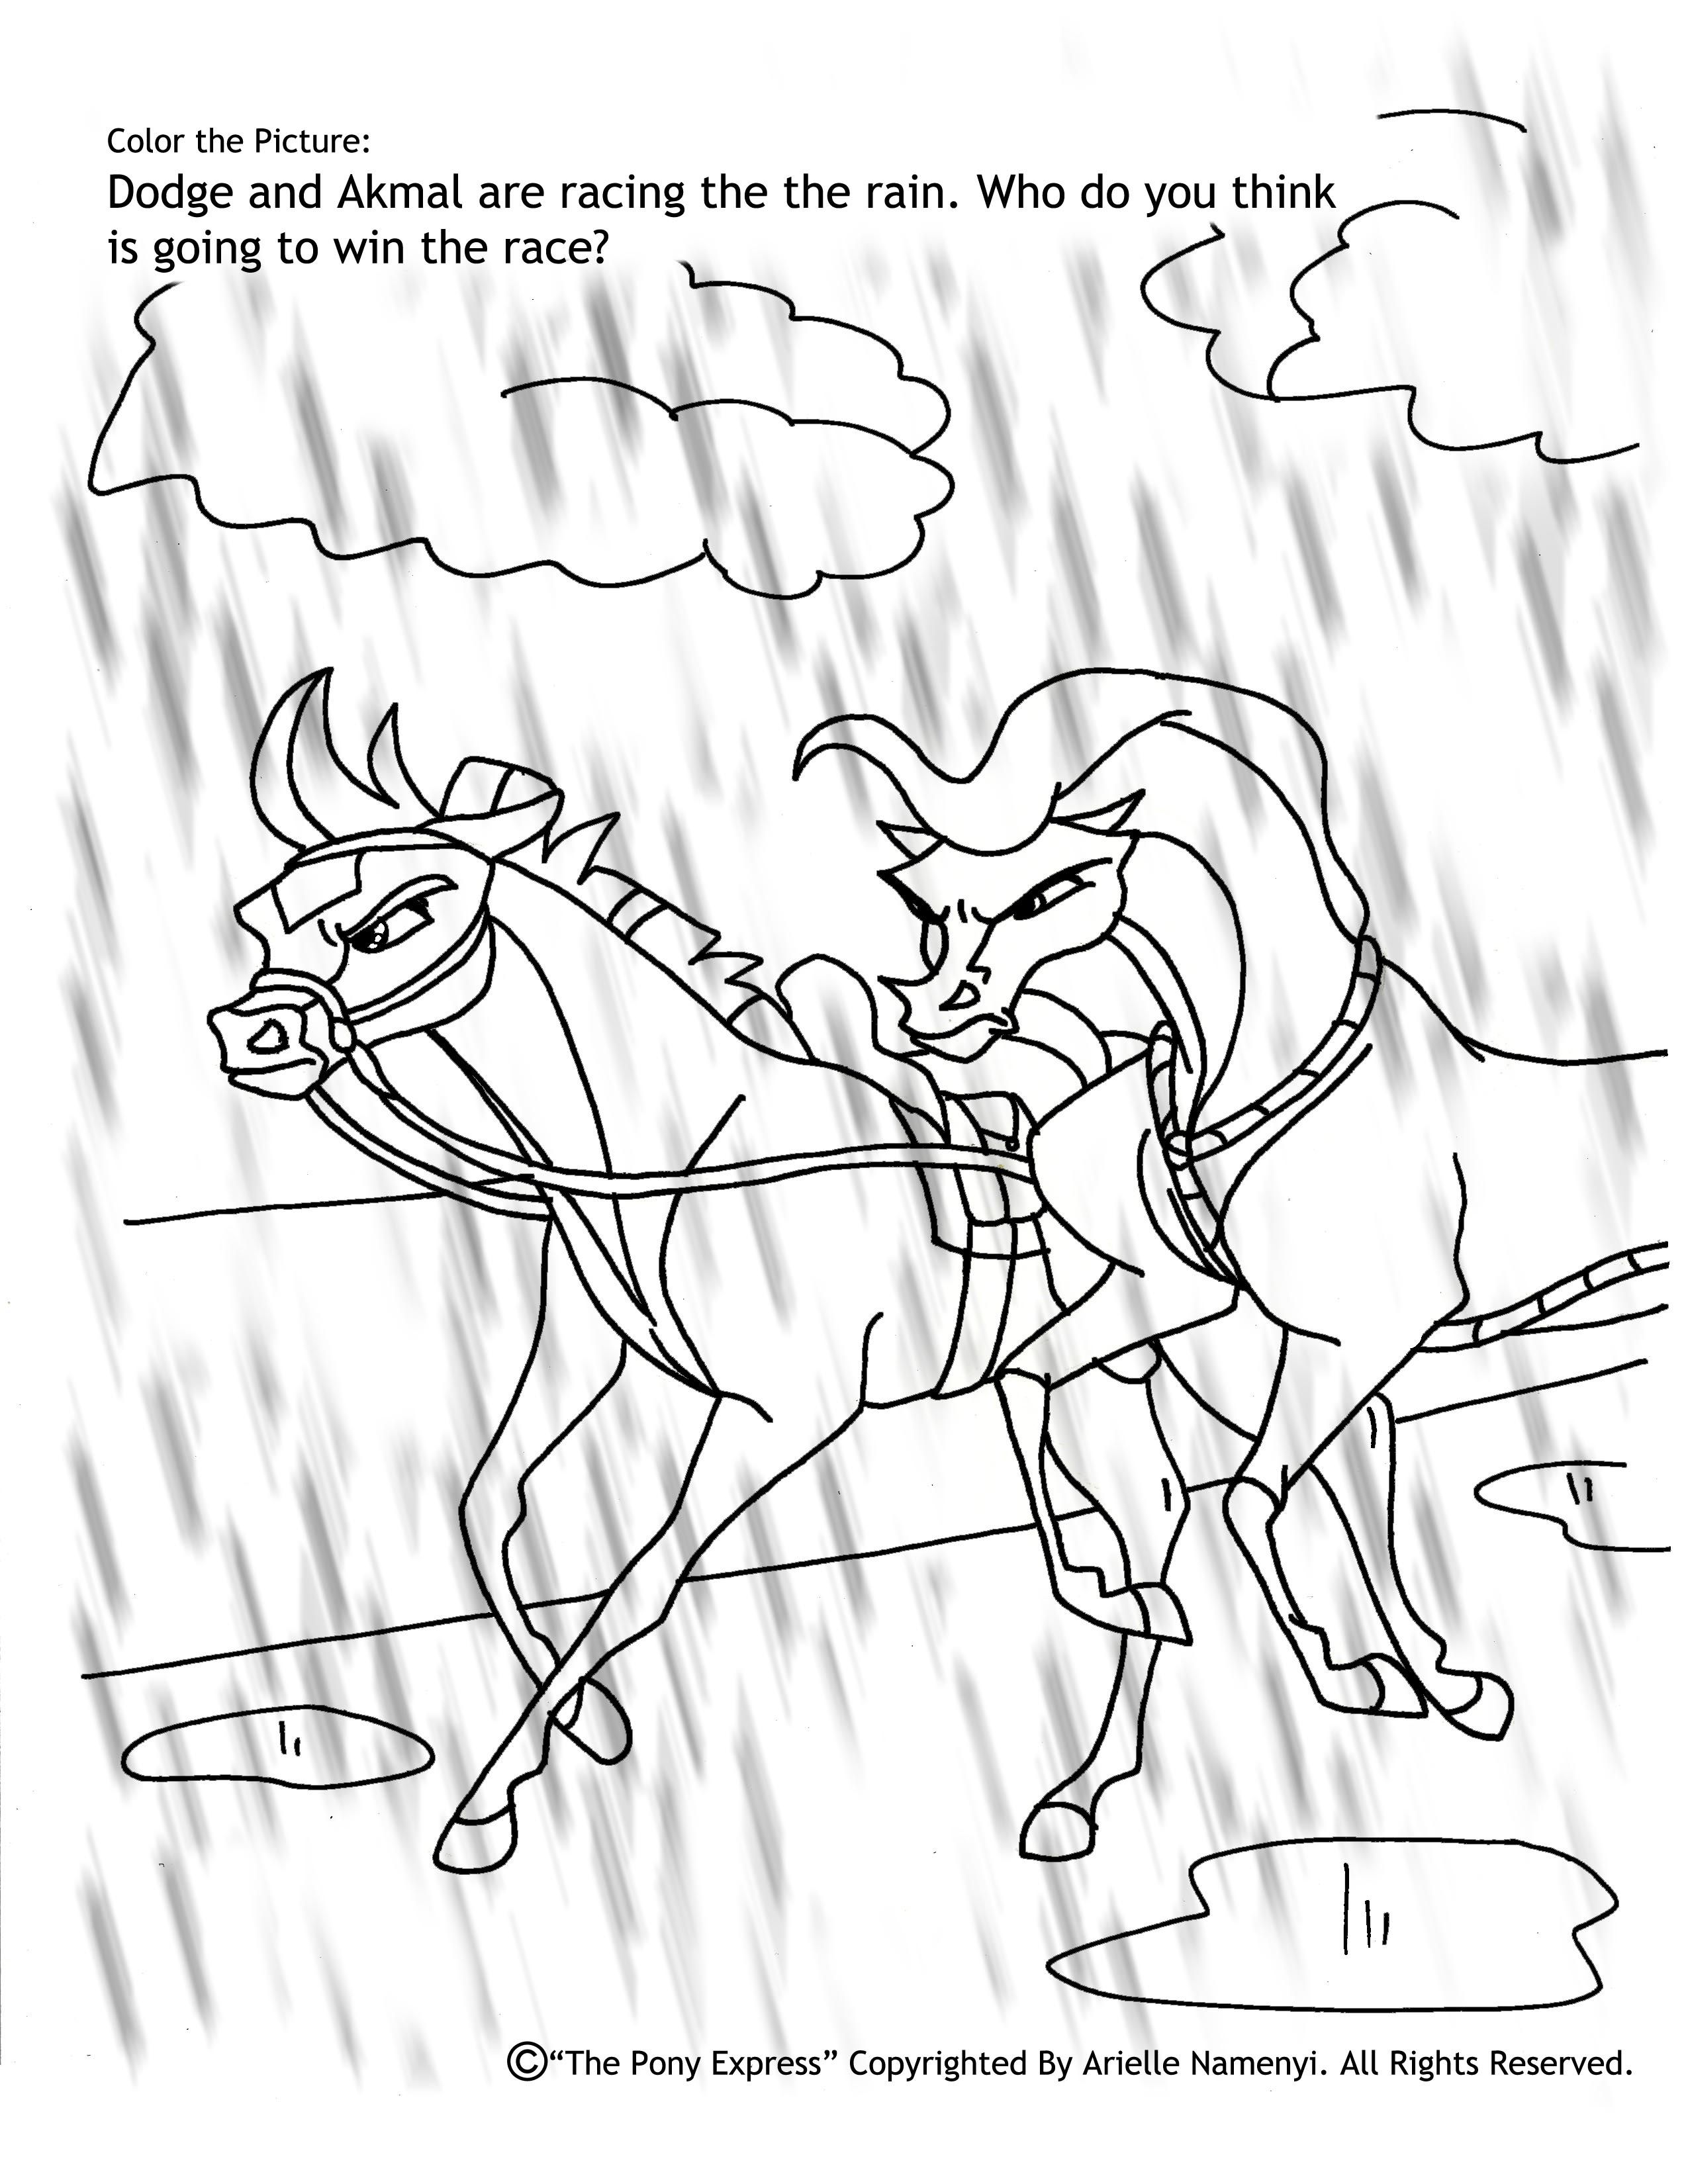 Color The Picture Christiancomics The